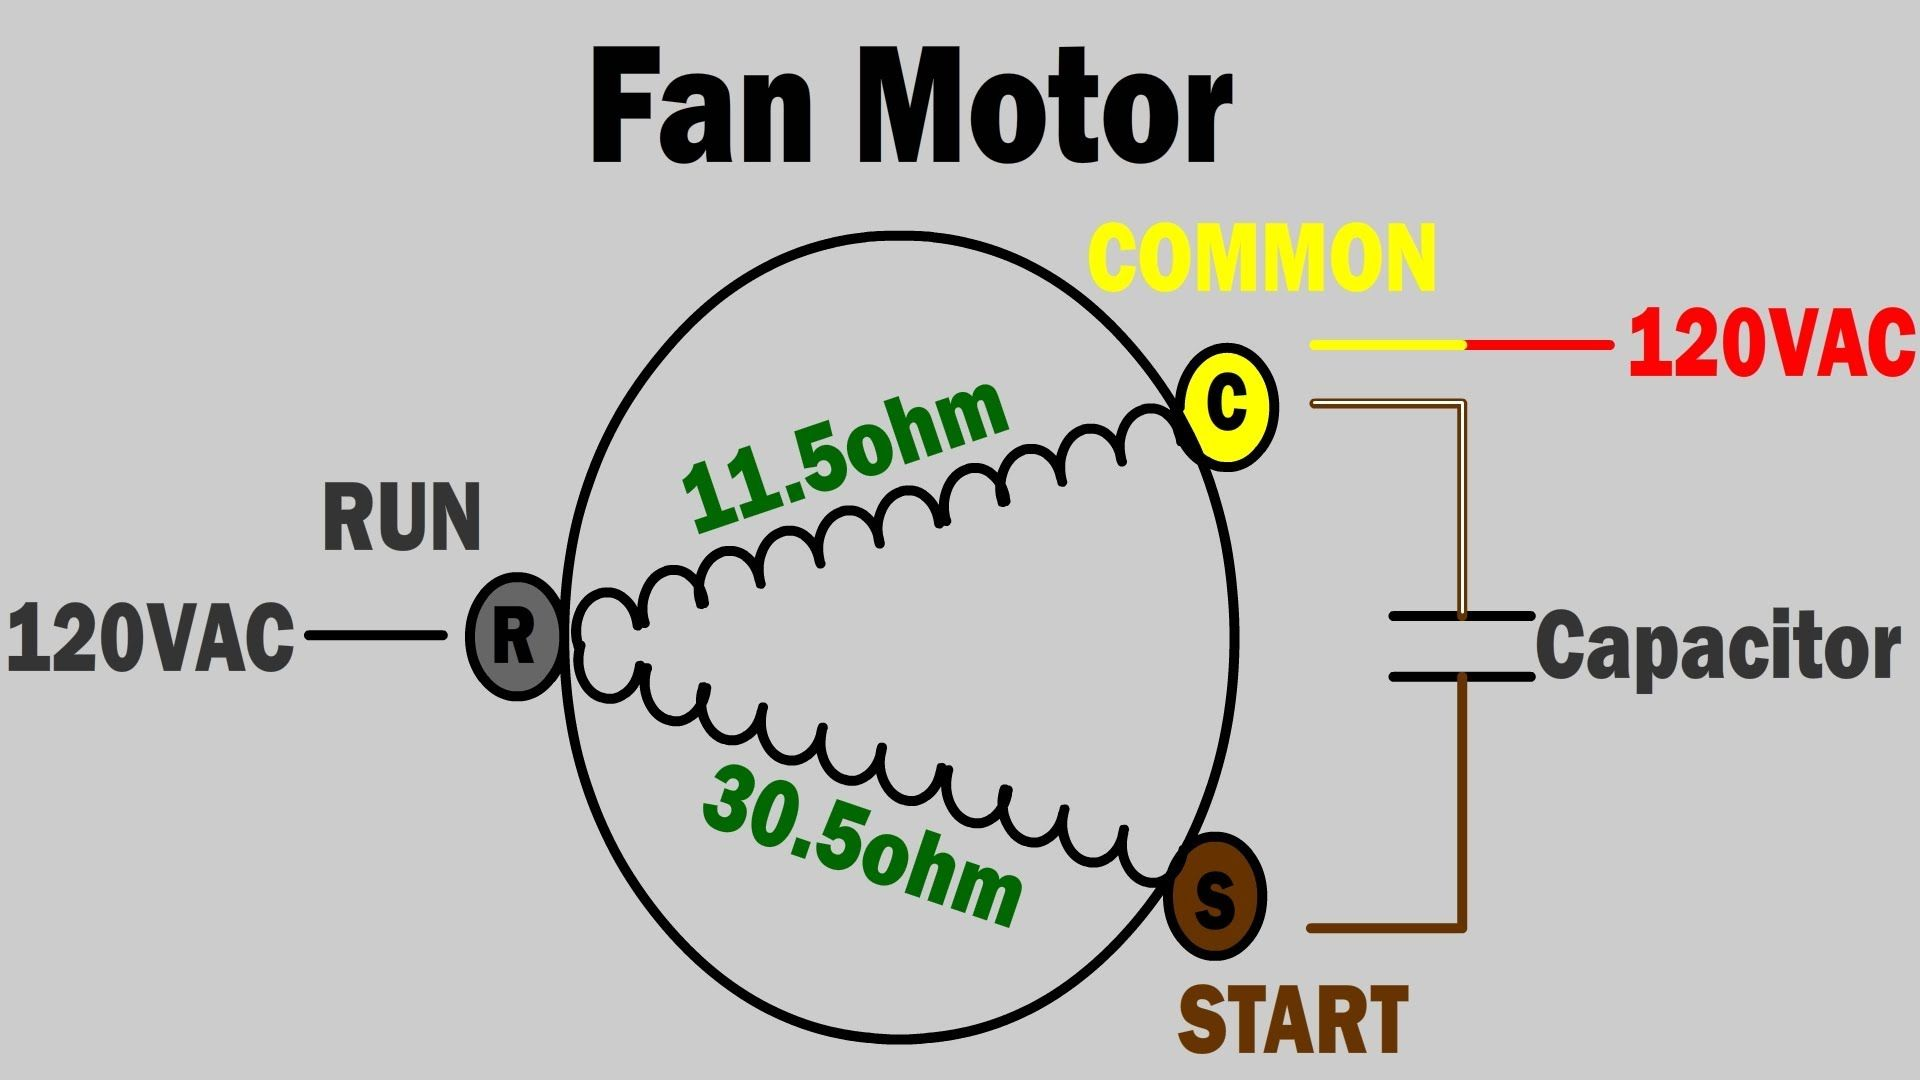 Pin by Борис Марић on E (With images) Fan motor, Ceiling